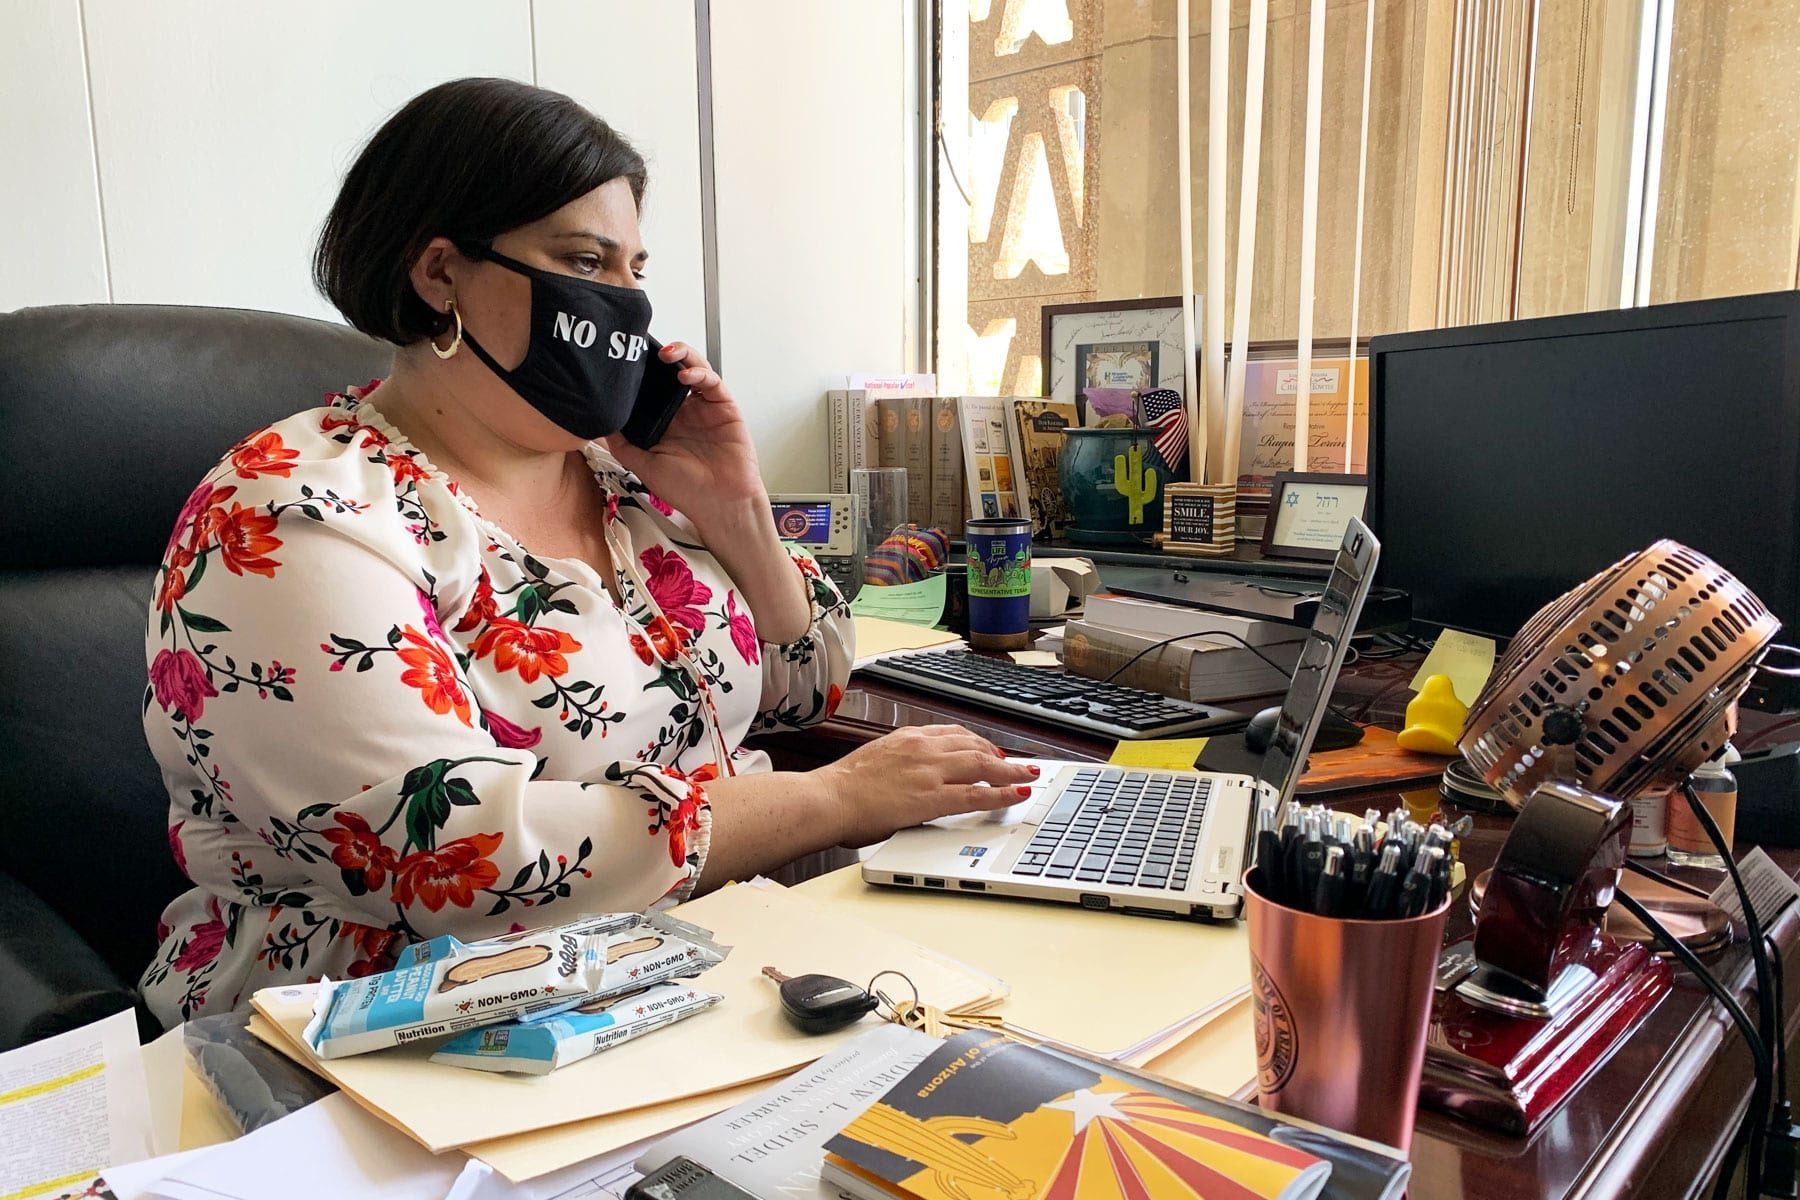 Arizona state Rep. Raquel Terán working at her desk.